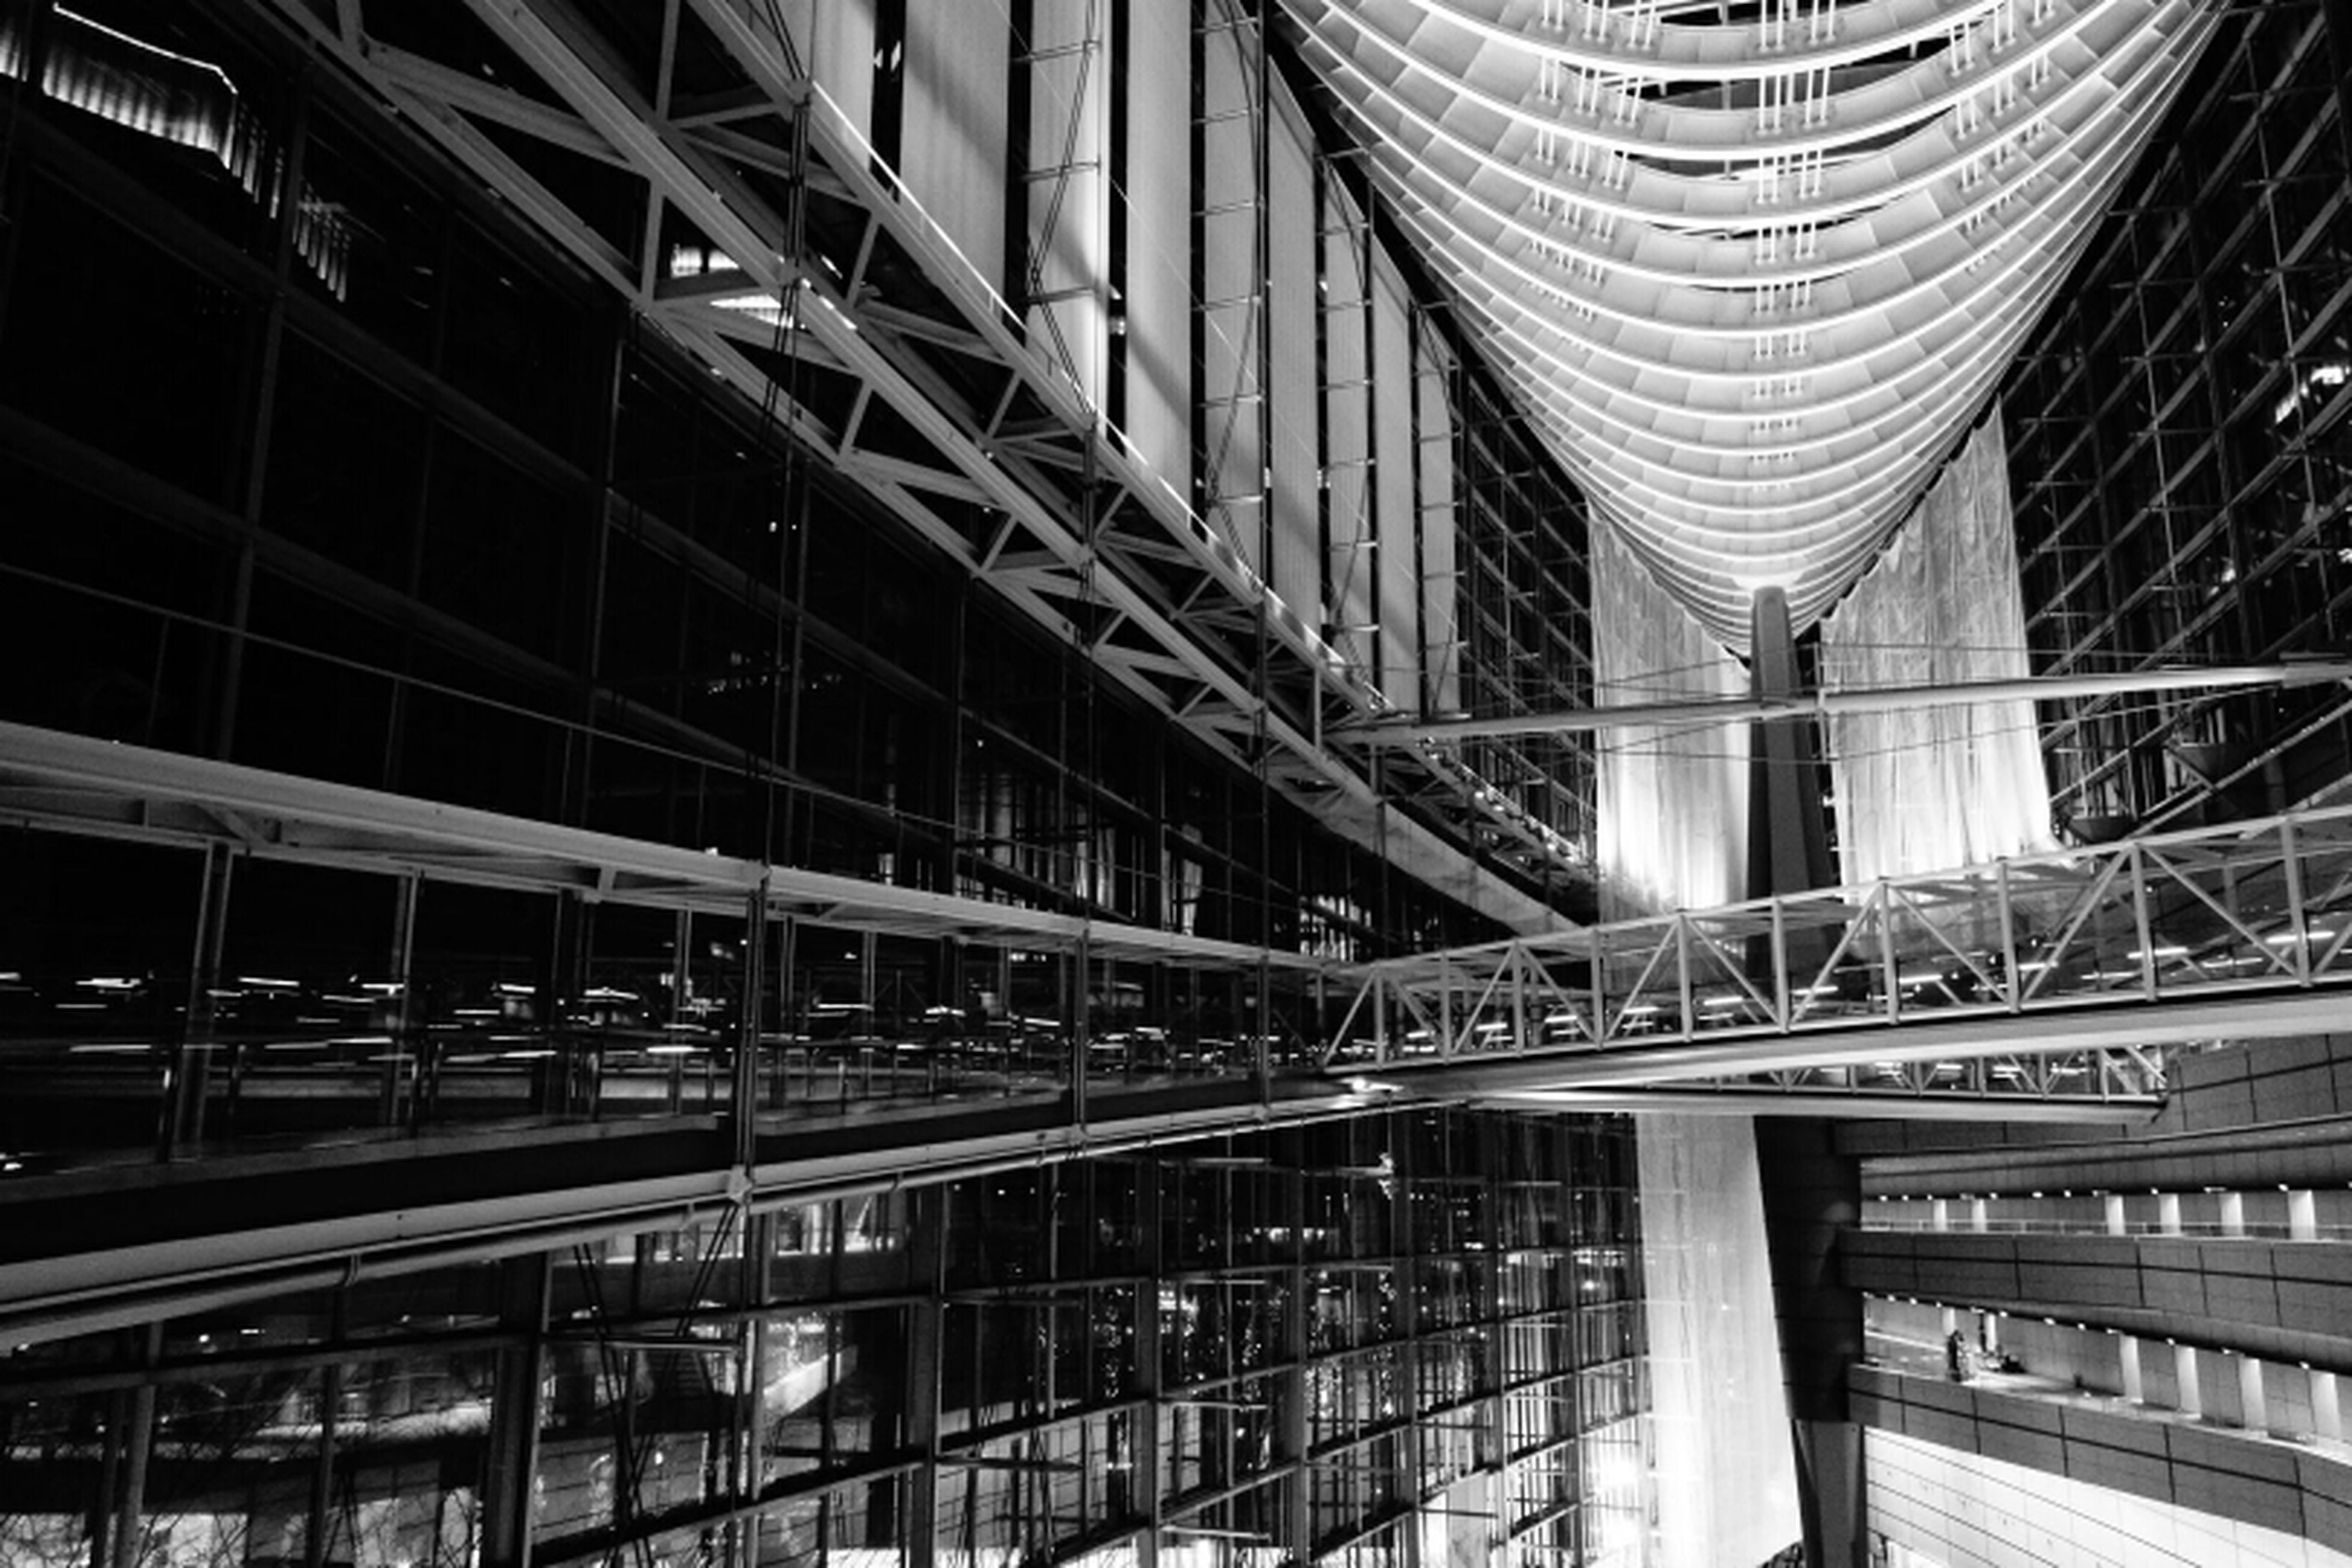 architecture, built structure, building exterior, low angle view, building, railing, city, modern, indoors, architectural feature, ceiling, window, no people, connection, metal, architectural column, bridge - man made structure, day, incidental people, staircase